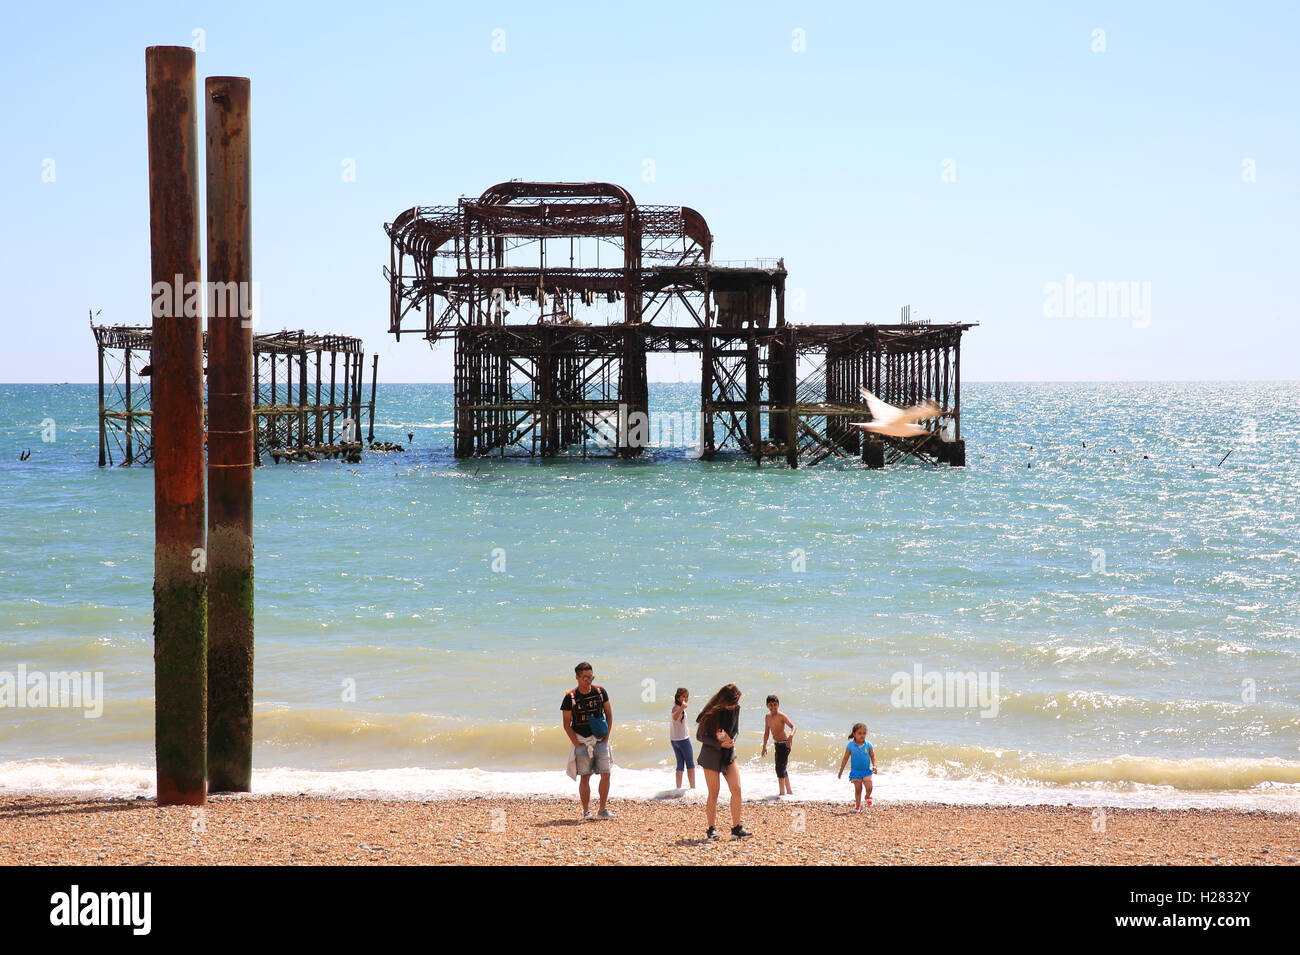 The skeletal remains of the Pavilion and supports of Brighton West Pier, in East Sussex, England, UK Stock Photo